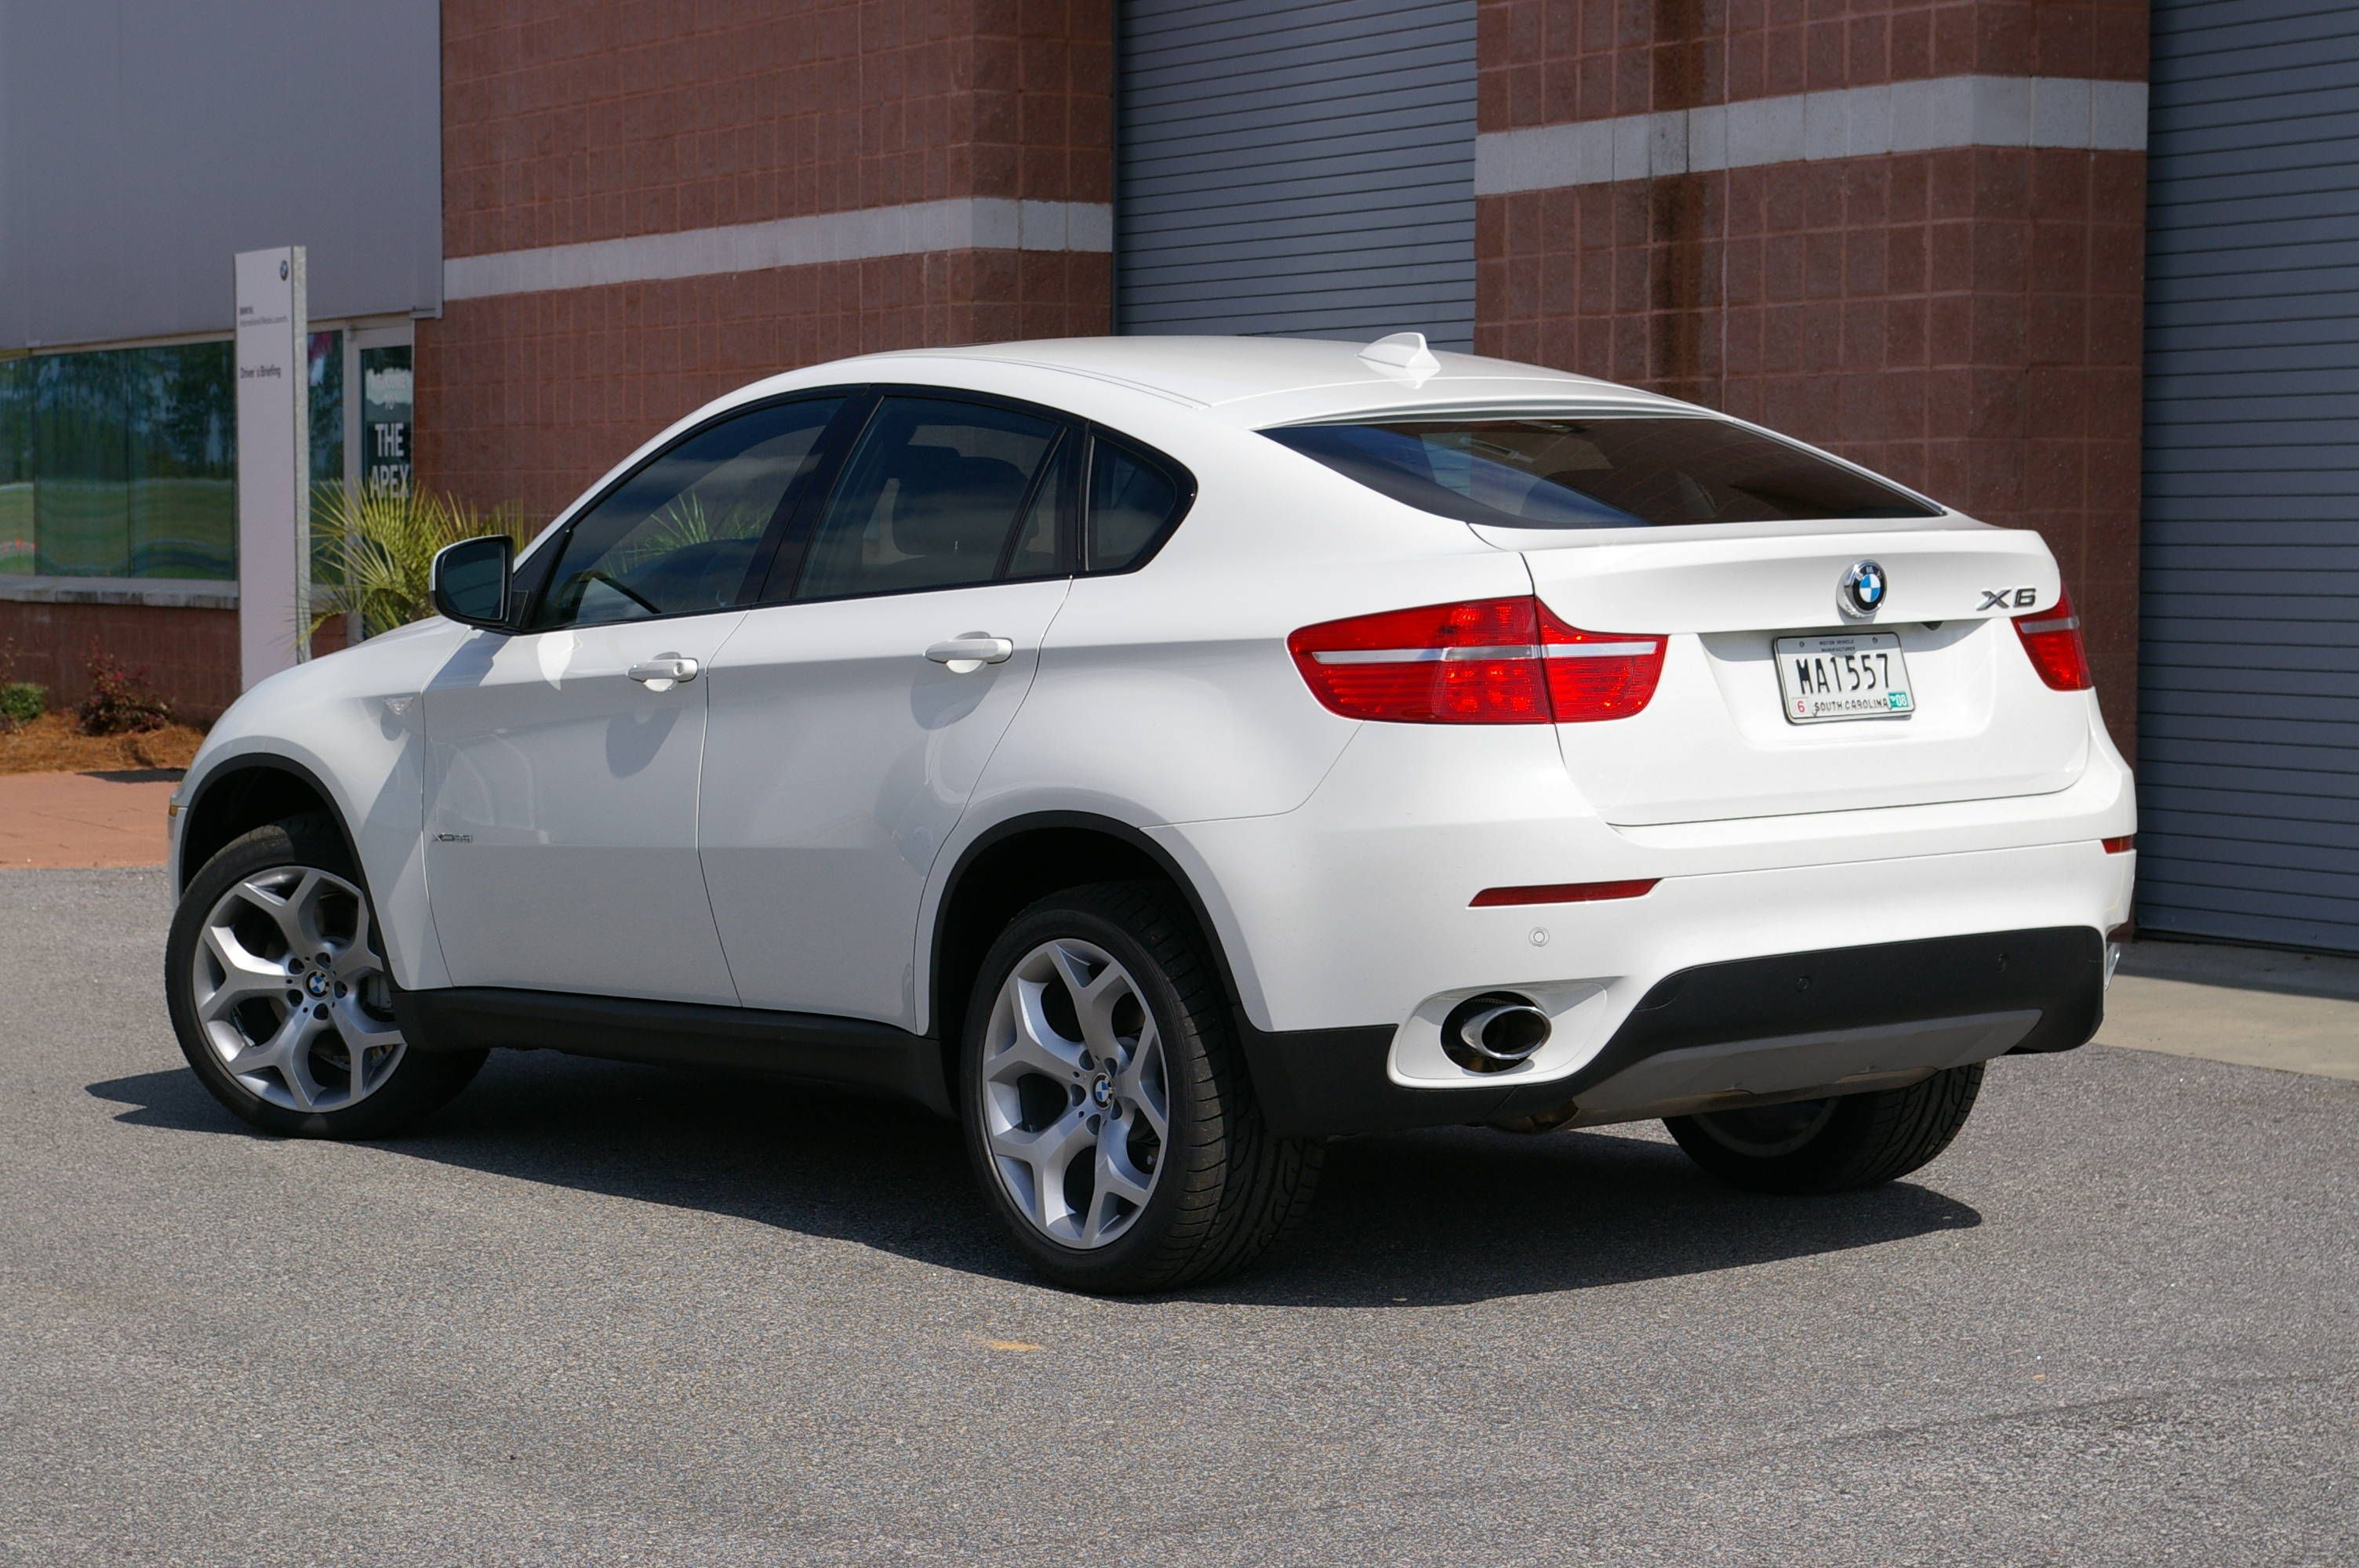 bmw bmw x6 2013 bmw x6 m50 2014 by ryan on tuesday july 23rd 2013 bmw x6 m50 2014 bmw. Black Bedroom Furniture Sets. Home Design Ideas